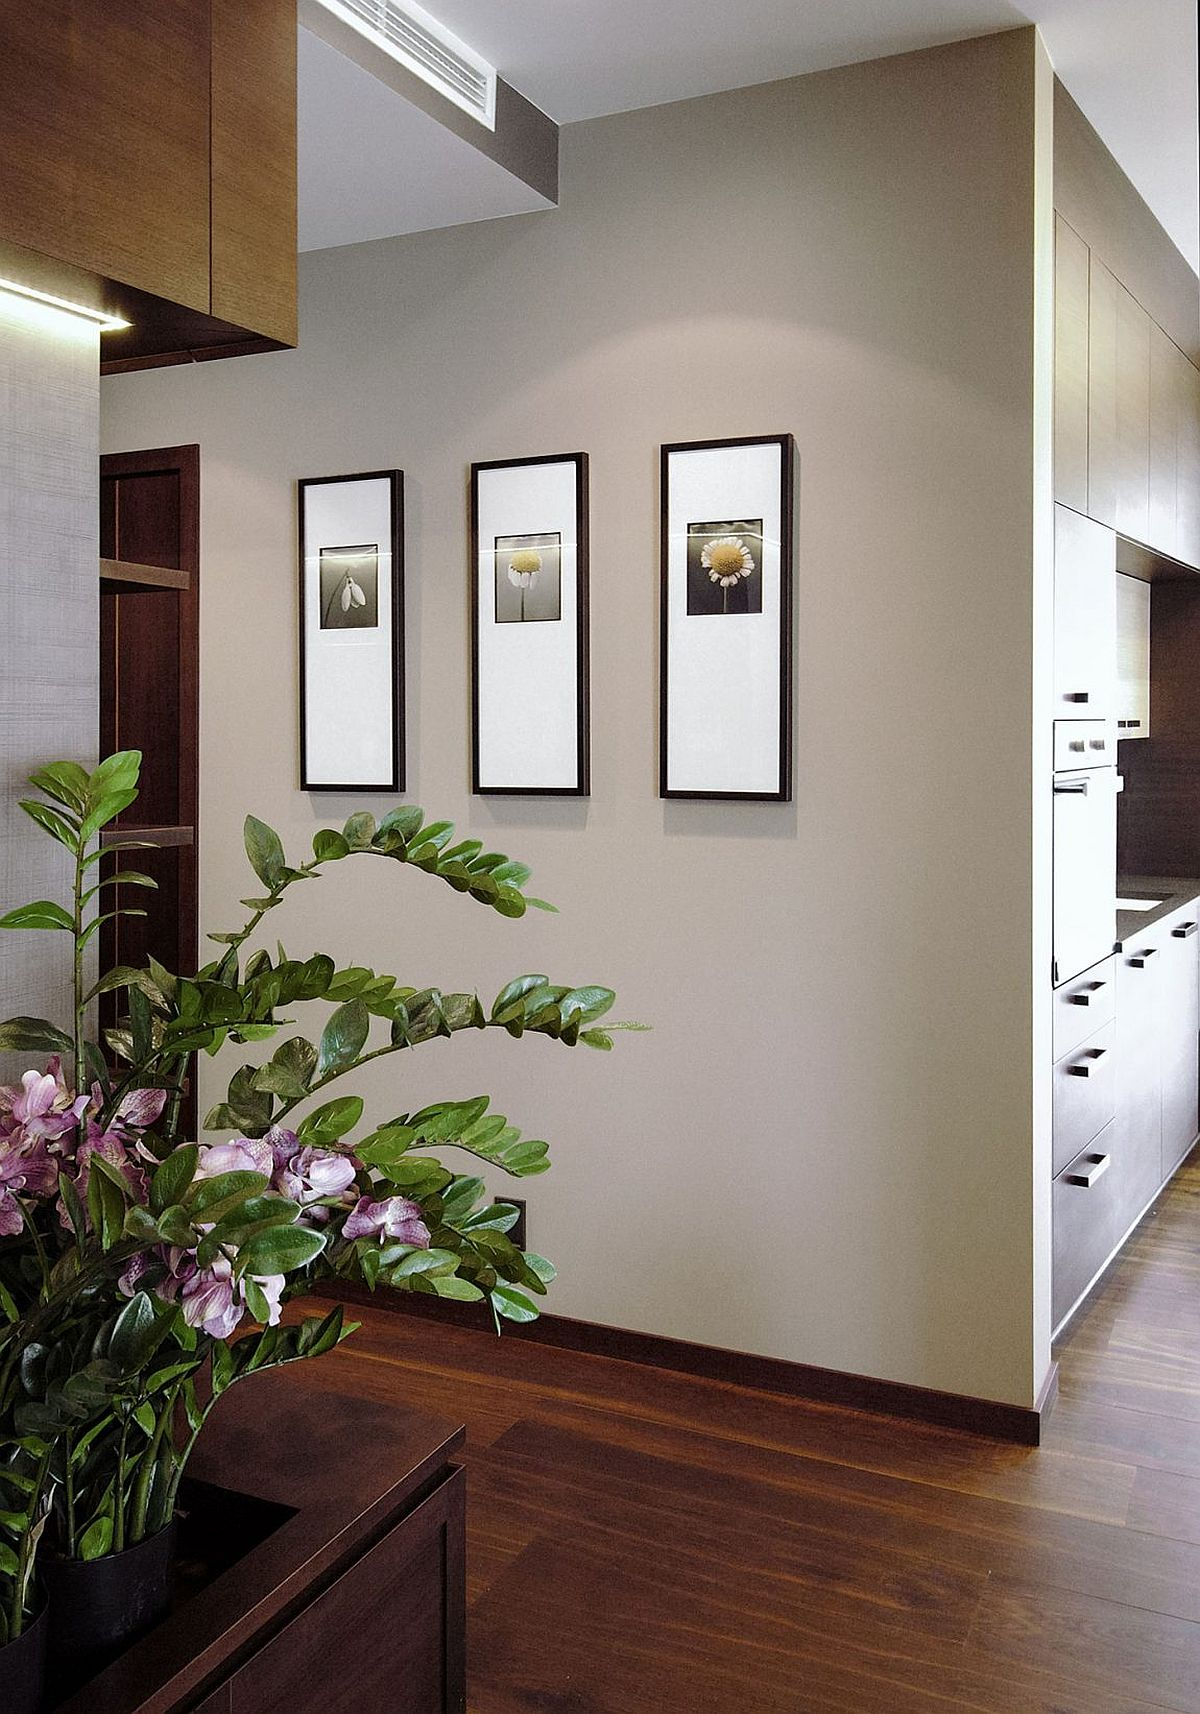 Gray walls highlight the photographs on display